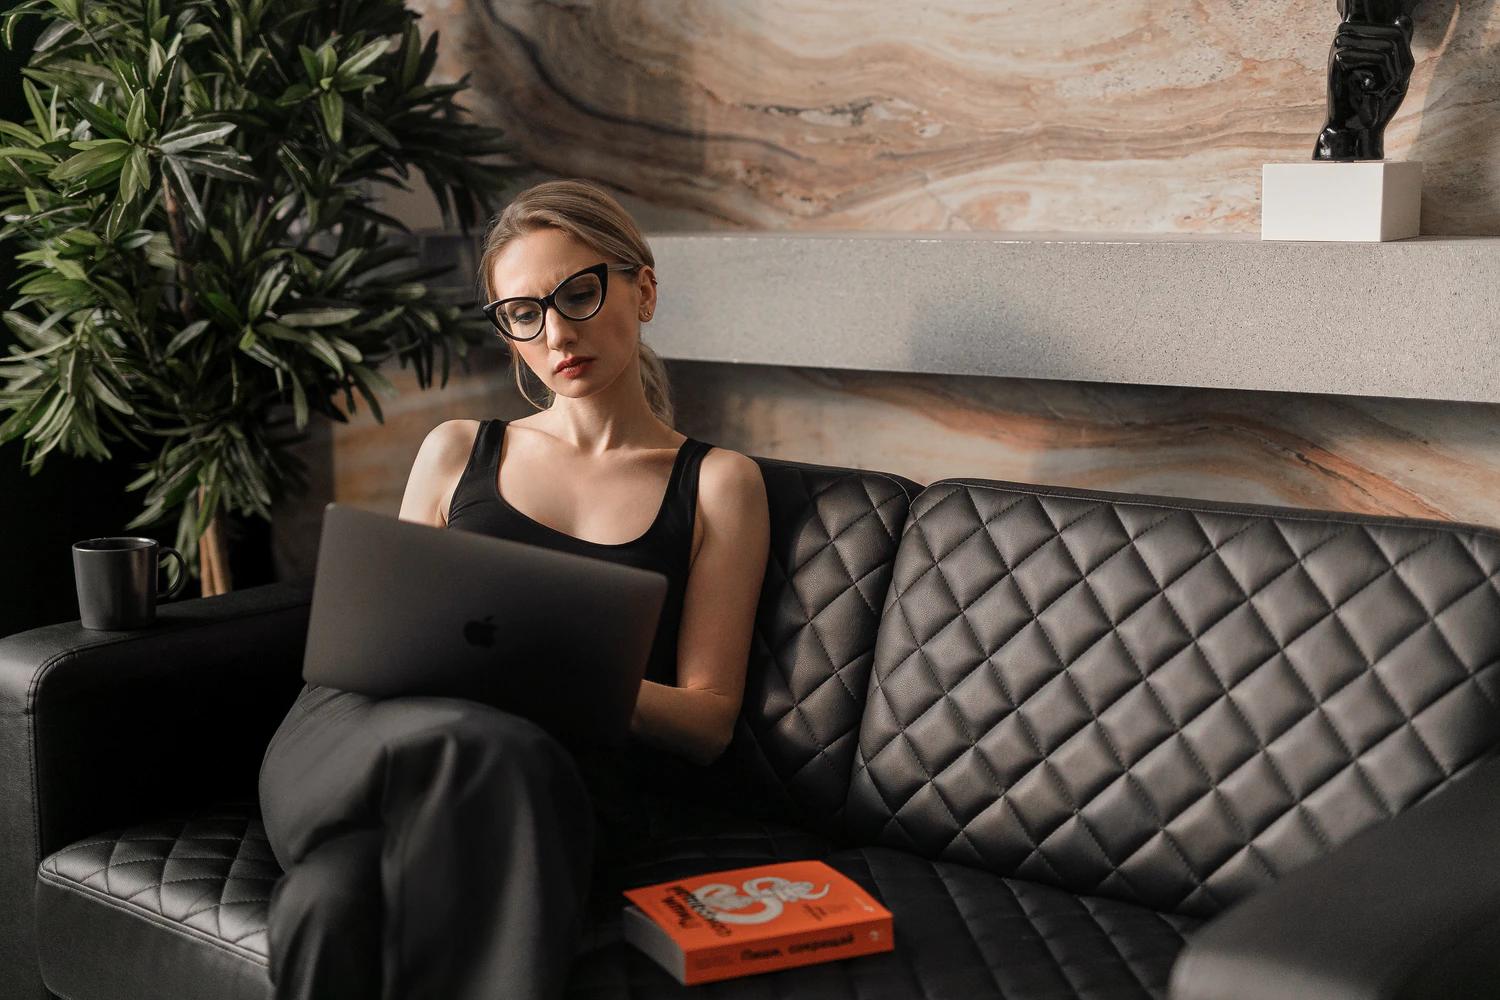 Woman sitting on a couch using a laptop